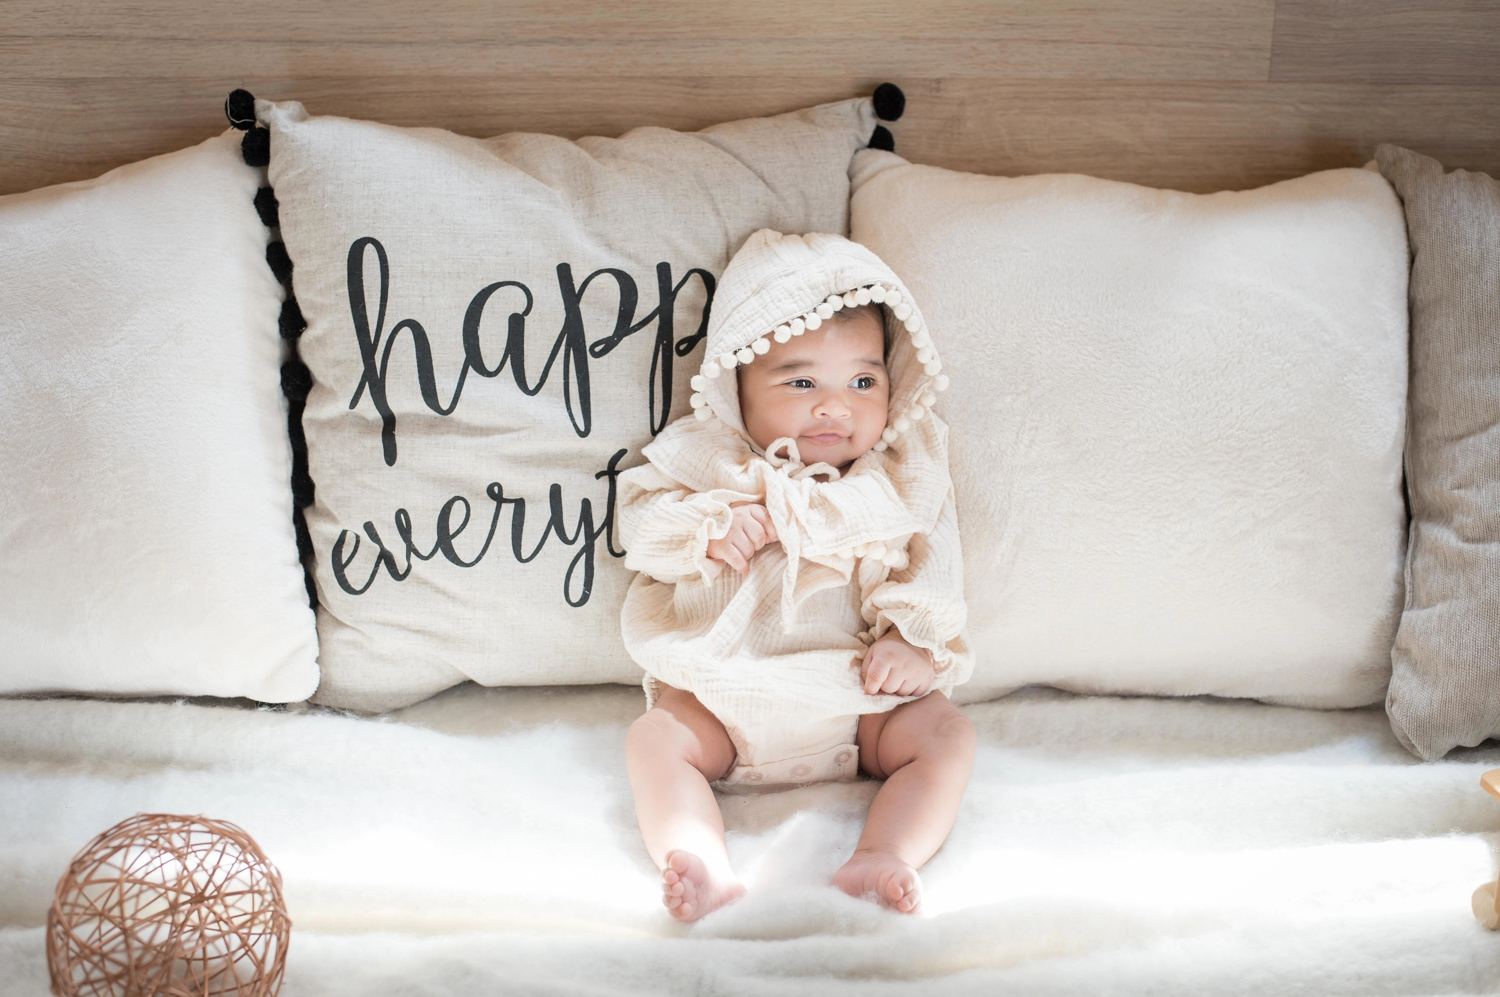 Month-old baby smiles during a newborn photo session.